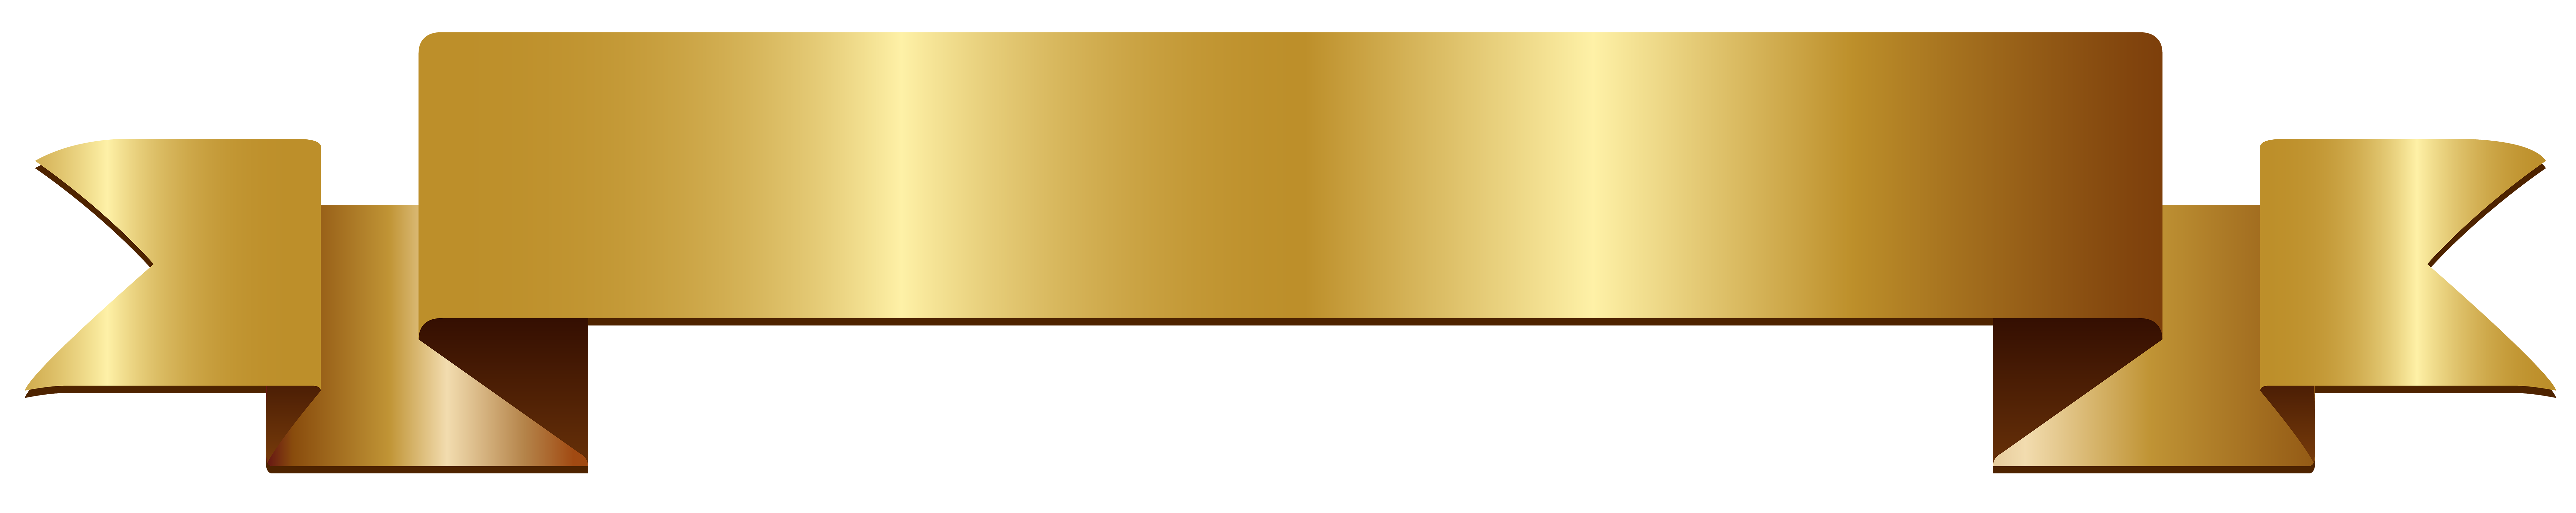 Gold banner ribbon png. Transparent clip art gallery